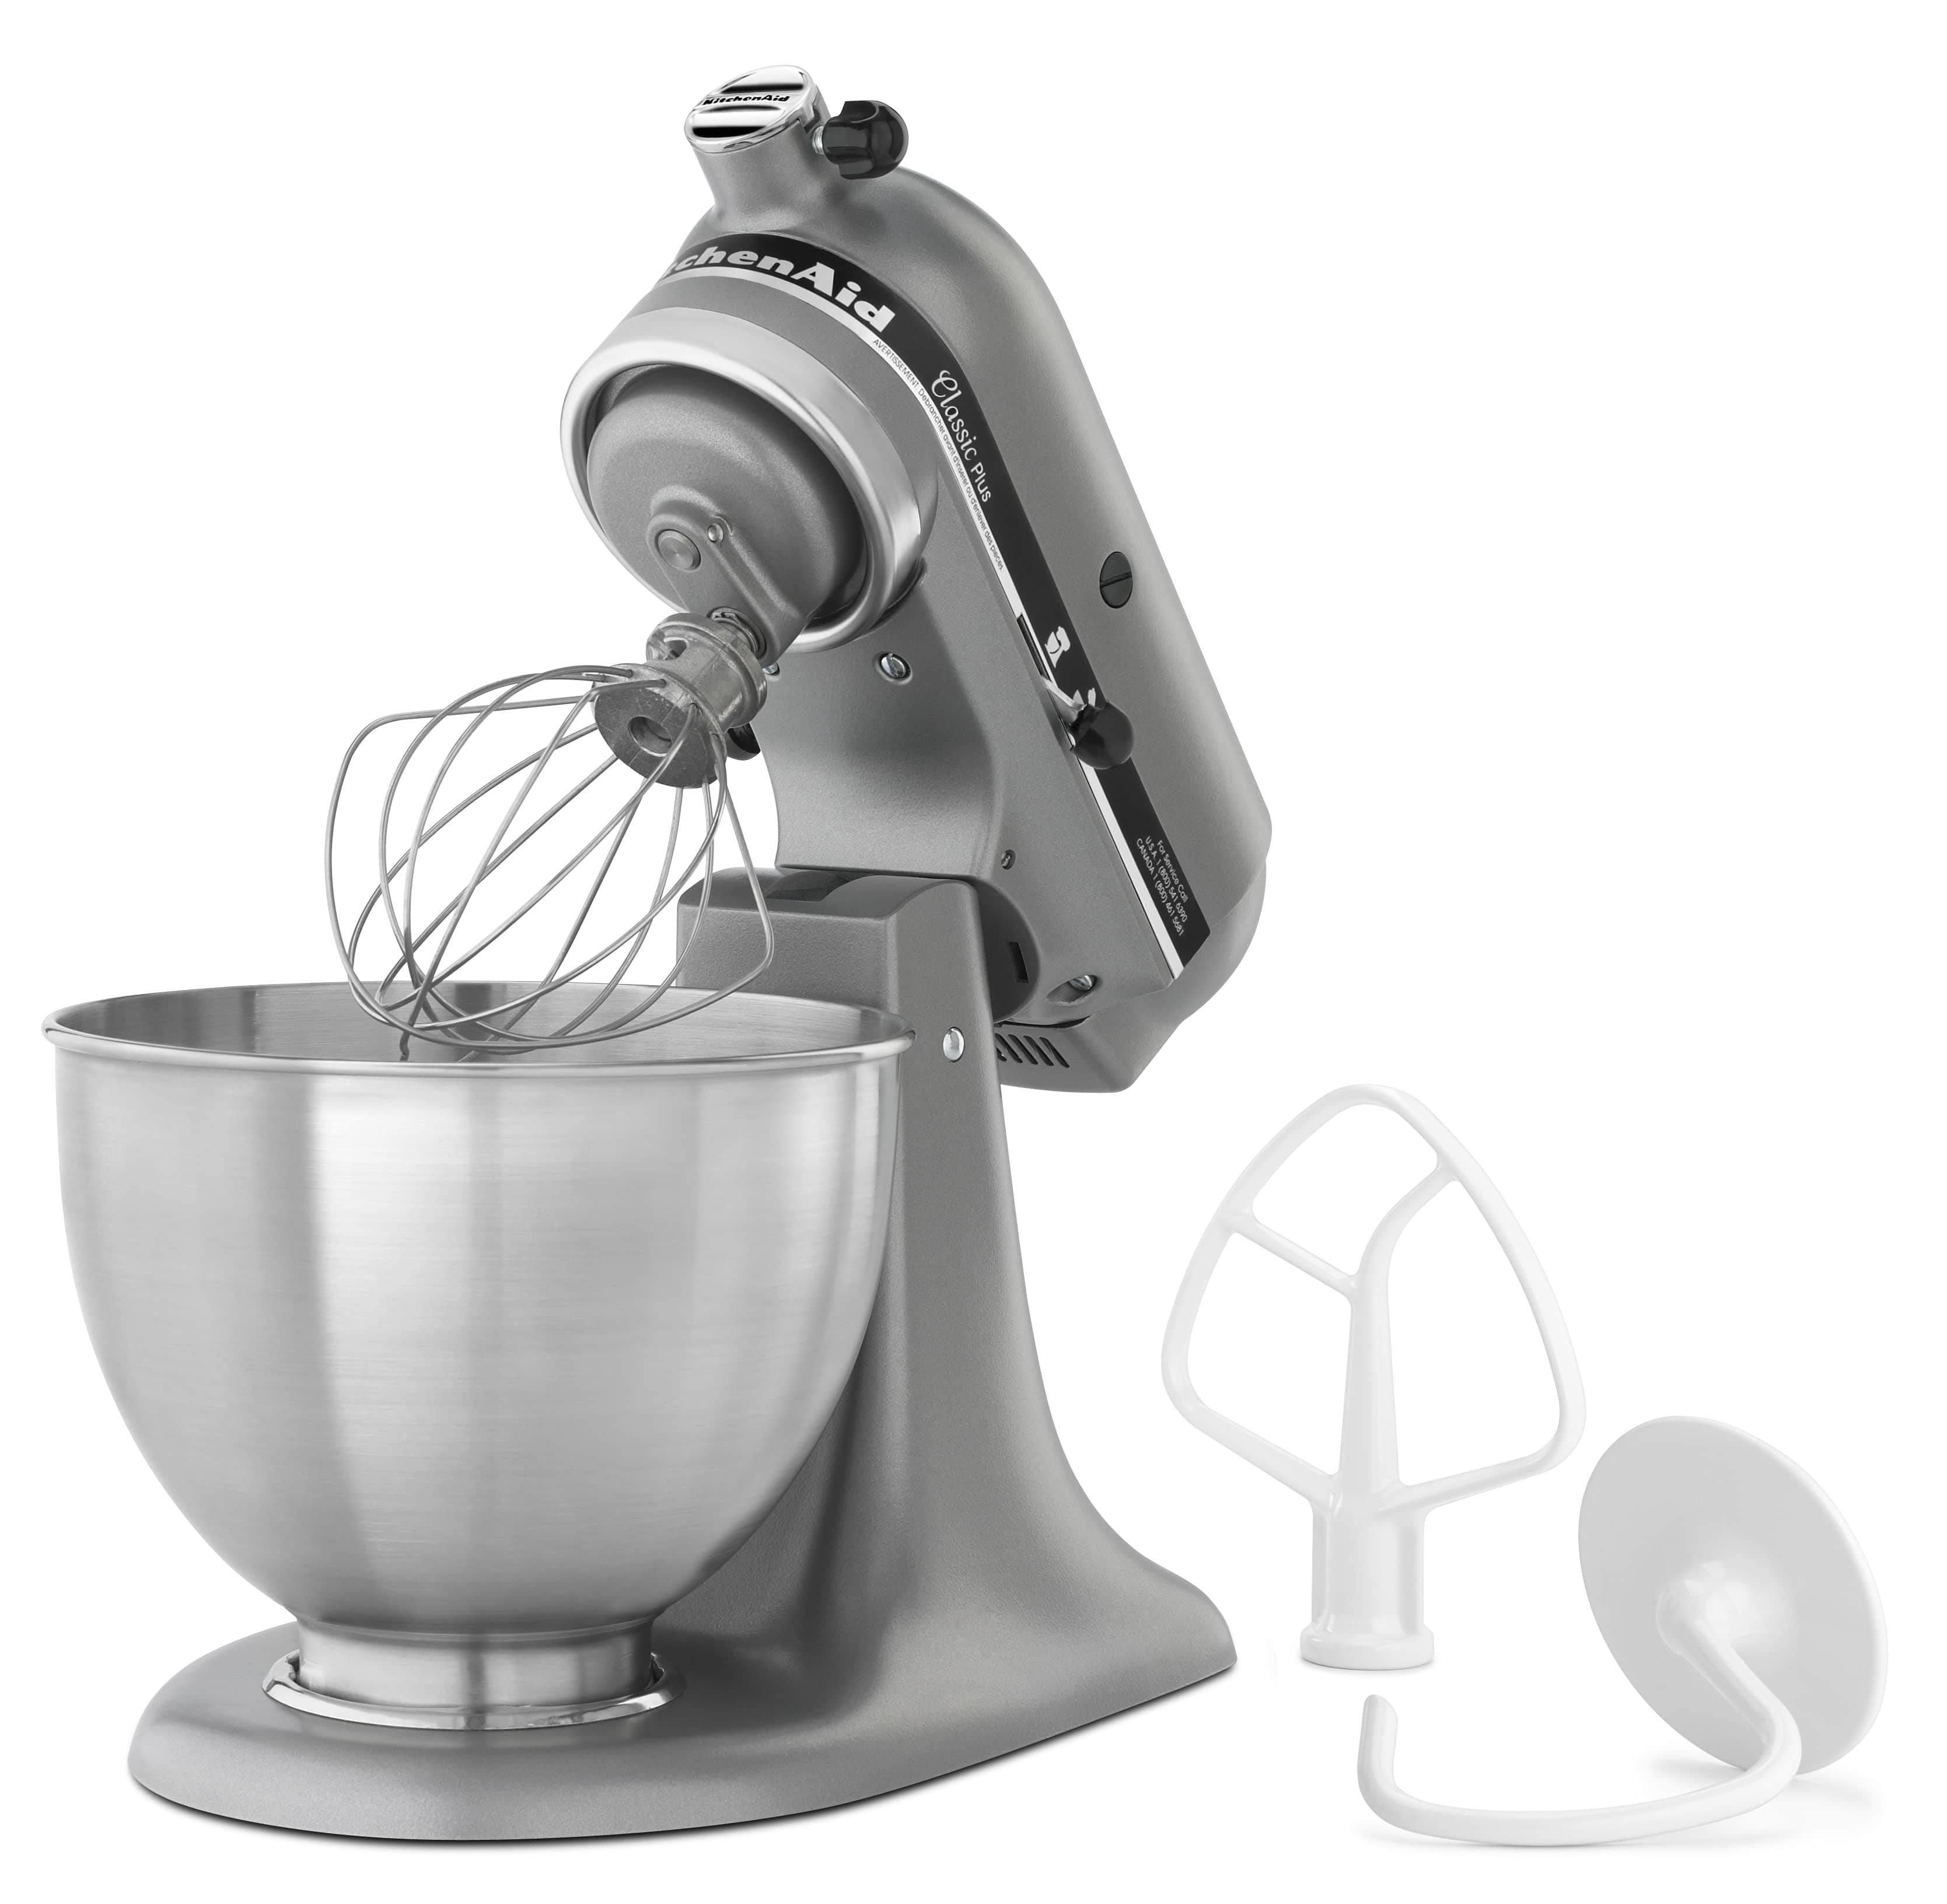 NEW-KitchenAid-Classic-Plus-Series-4-5-Quart-Tilt-Head-Stand-Mixer-KSM75 thumbnail 10